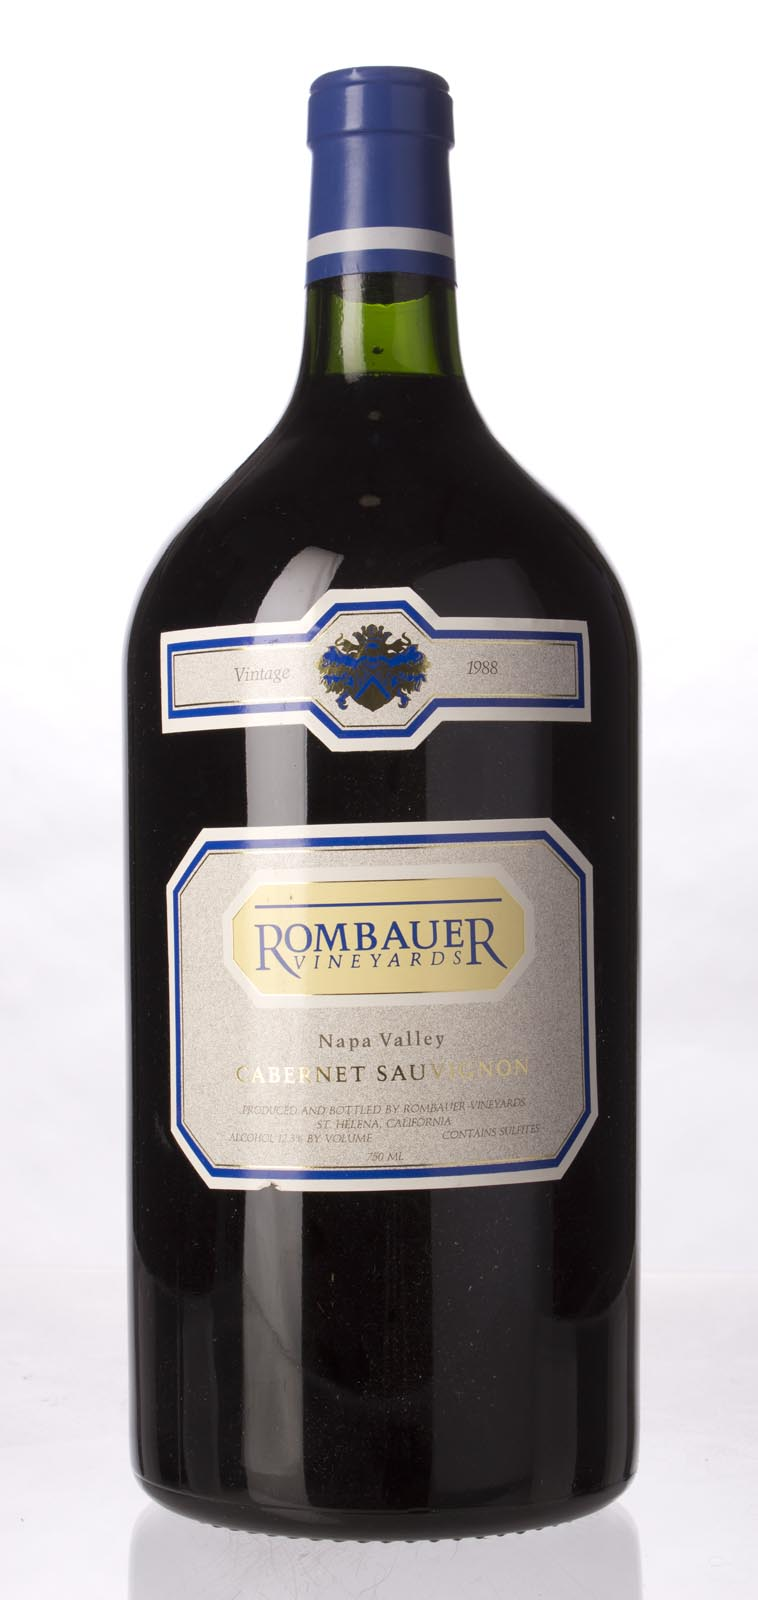 Rombauer Cabernet Sauvignon Napa Valley 1988, 3L () from The BPW - Merchants of rare and fine wines.